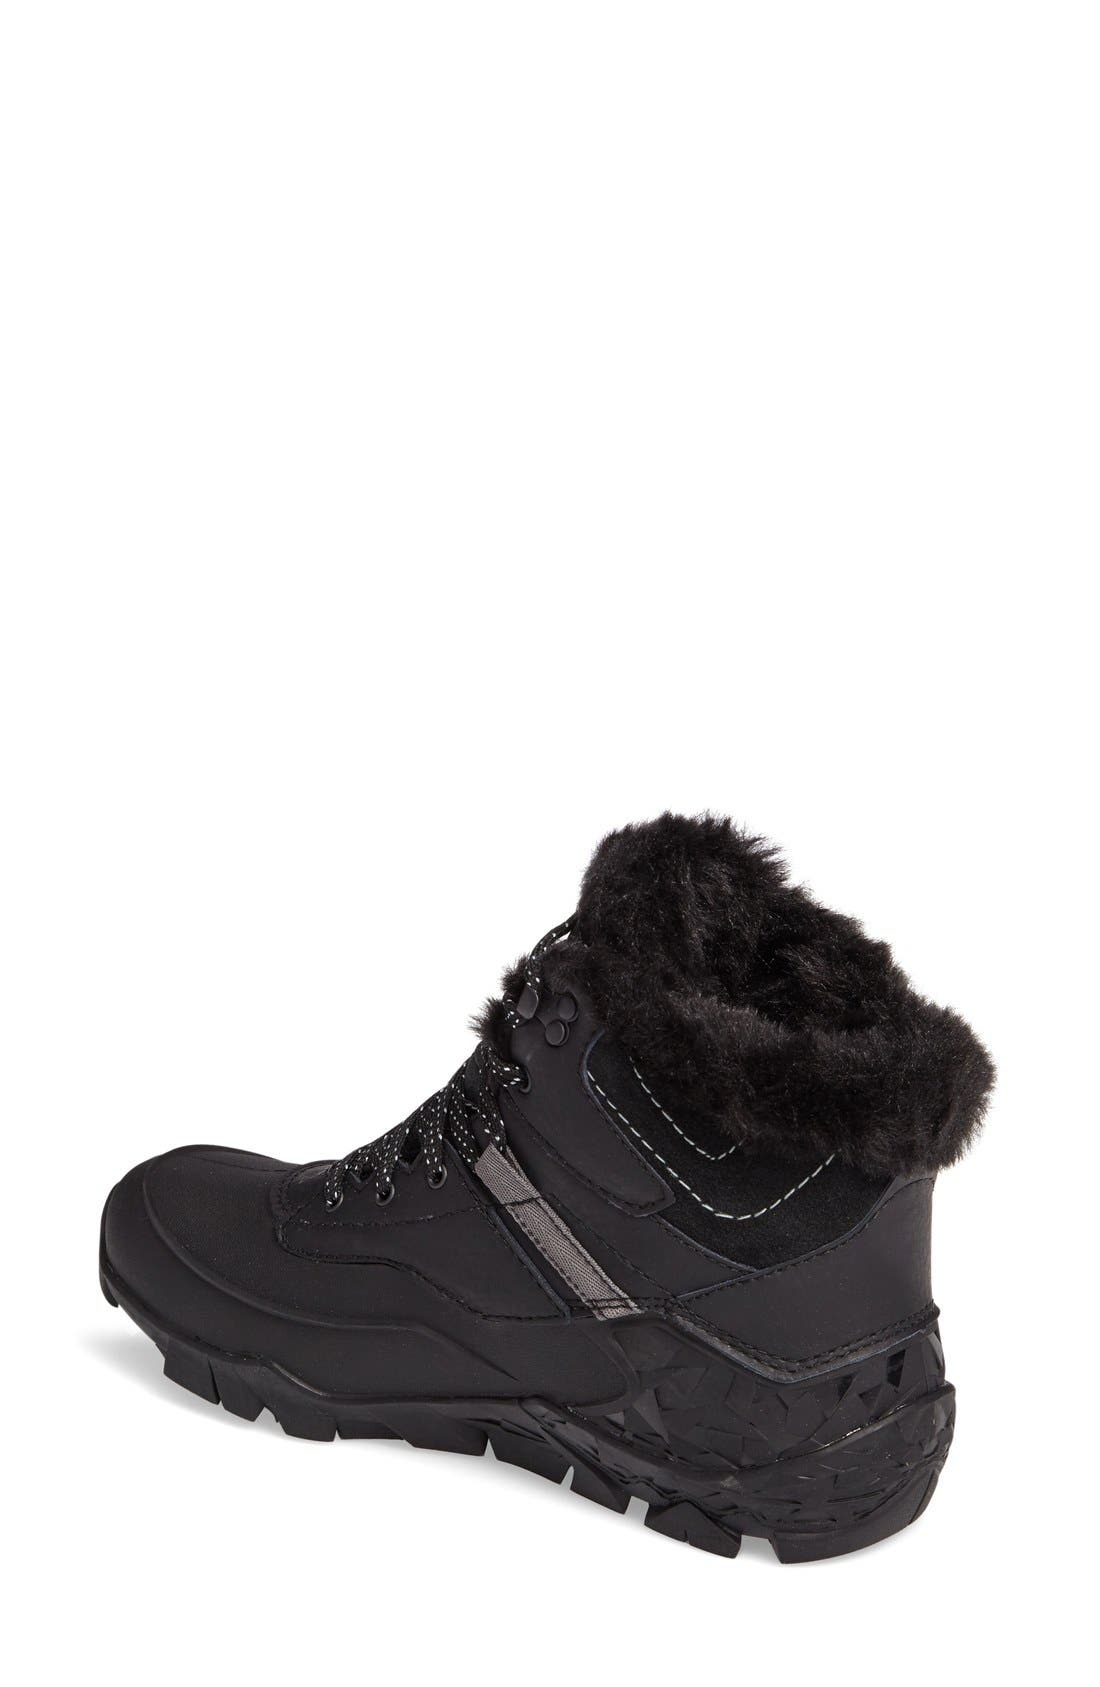 Aurora 6 Waterproof Faux Fur Lined Boot,                             Alternate thumbnail 3, color,                             BLACK LEATHER